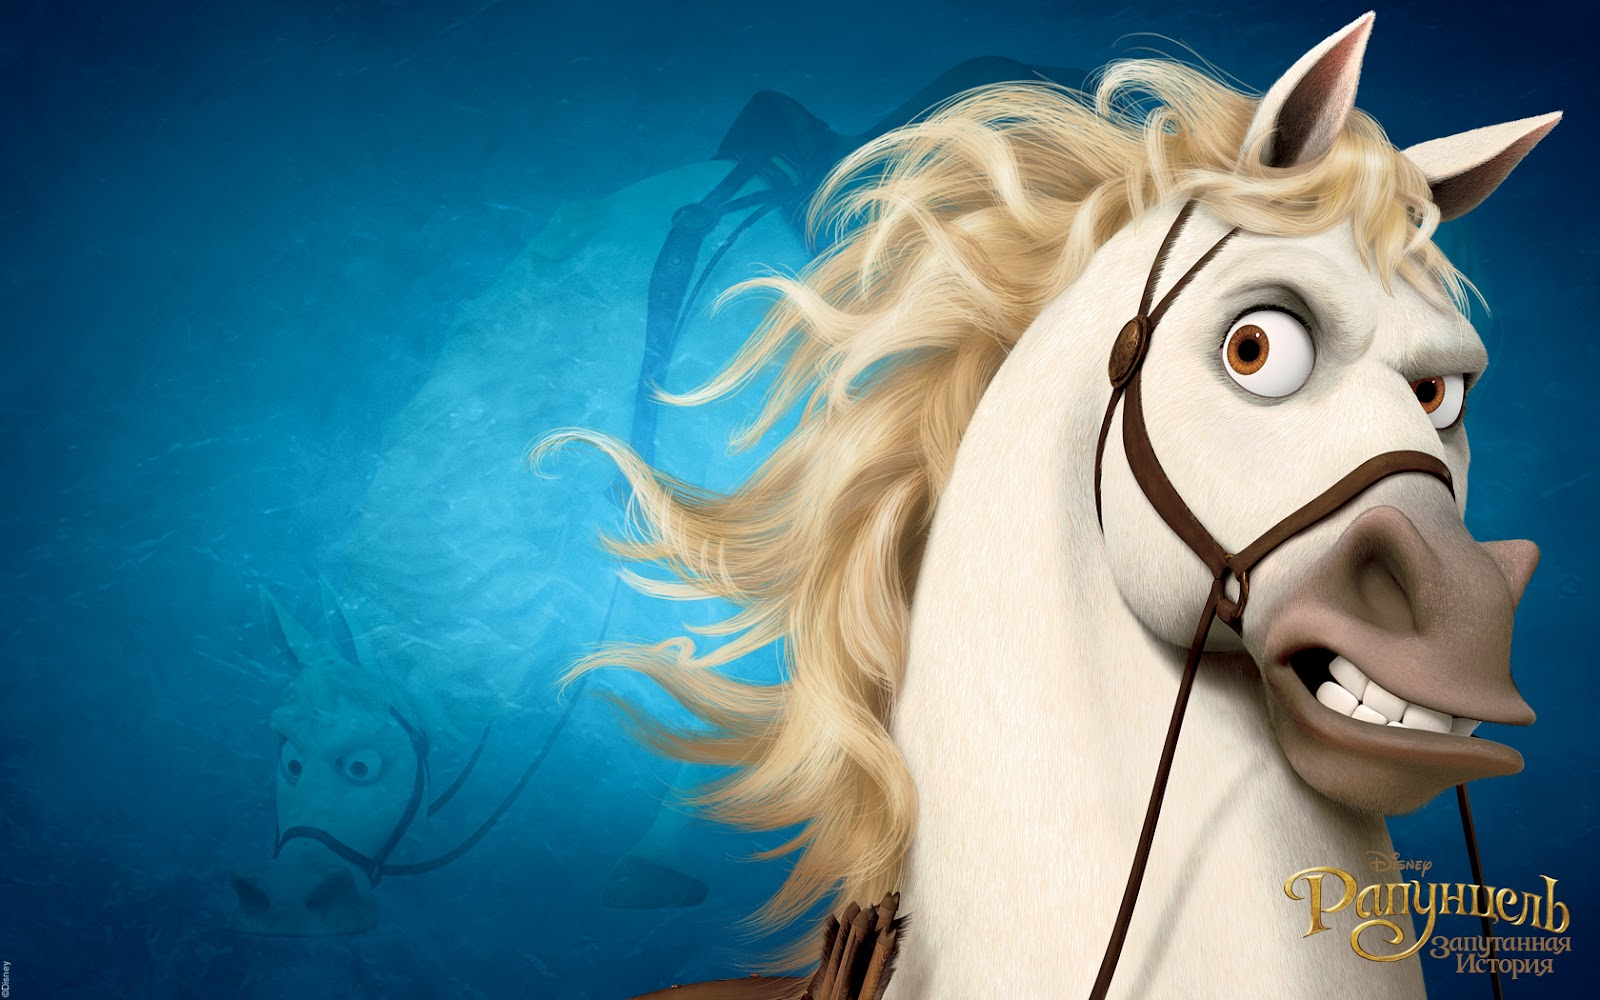 Tangled-offical-wallpapers-tangled-Maximus-1680x1050 ...